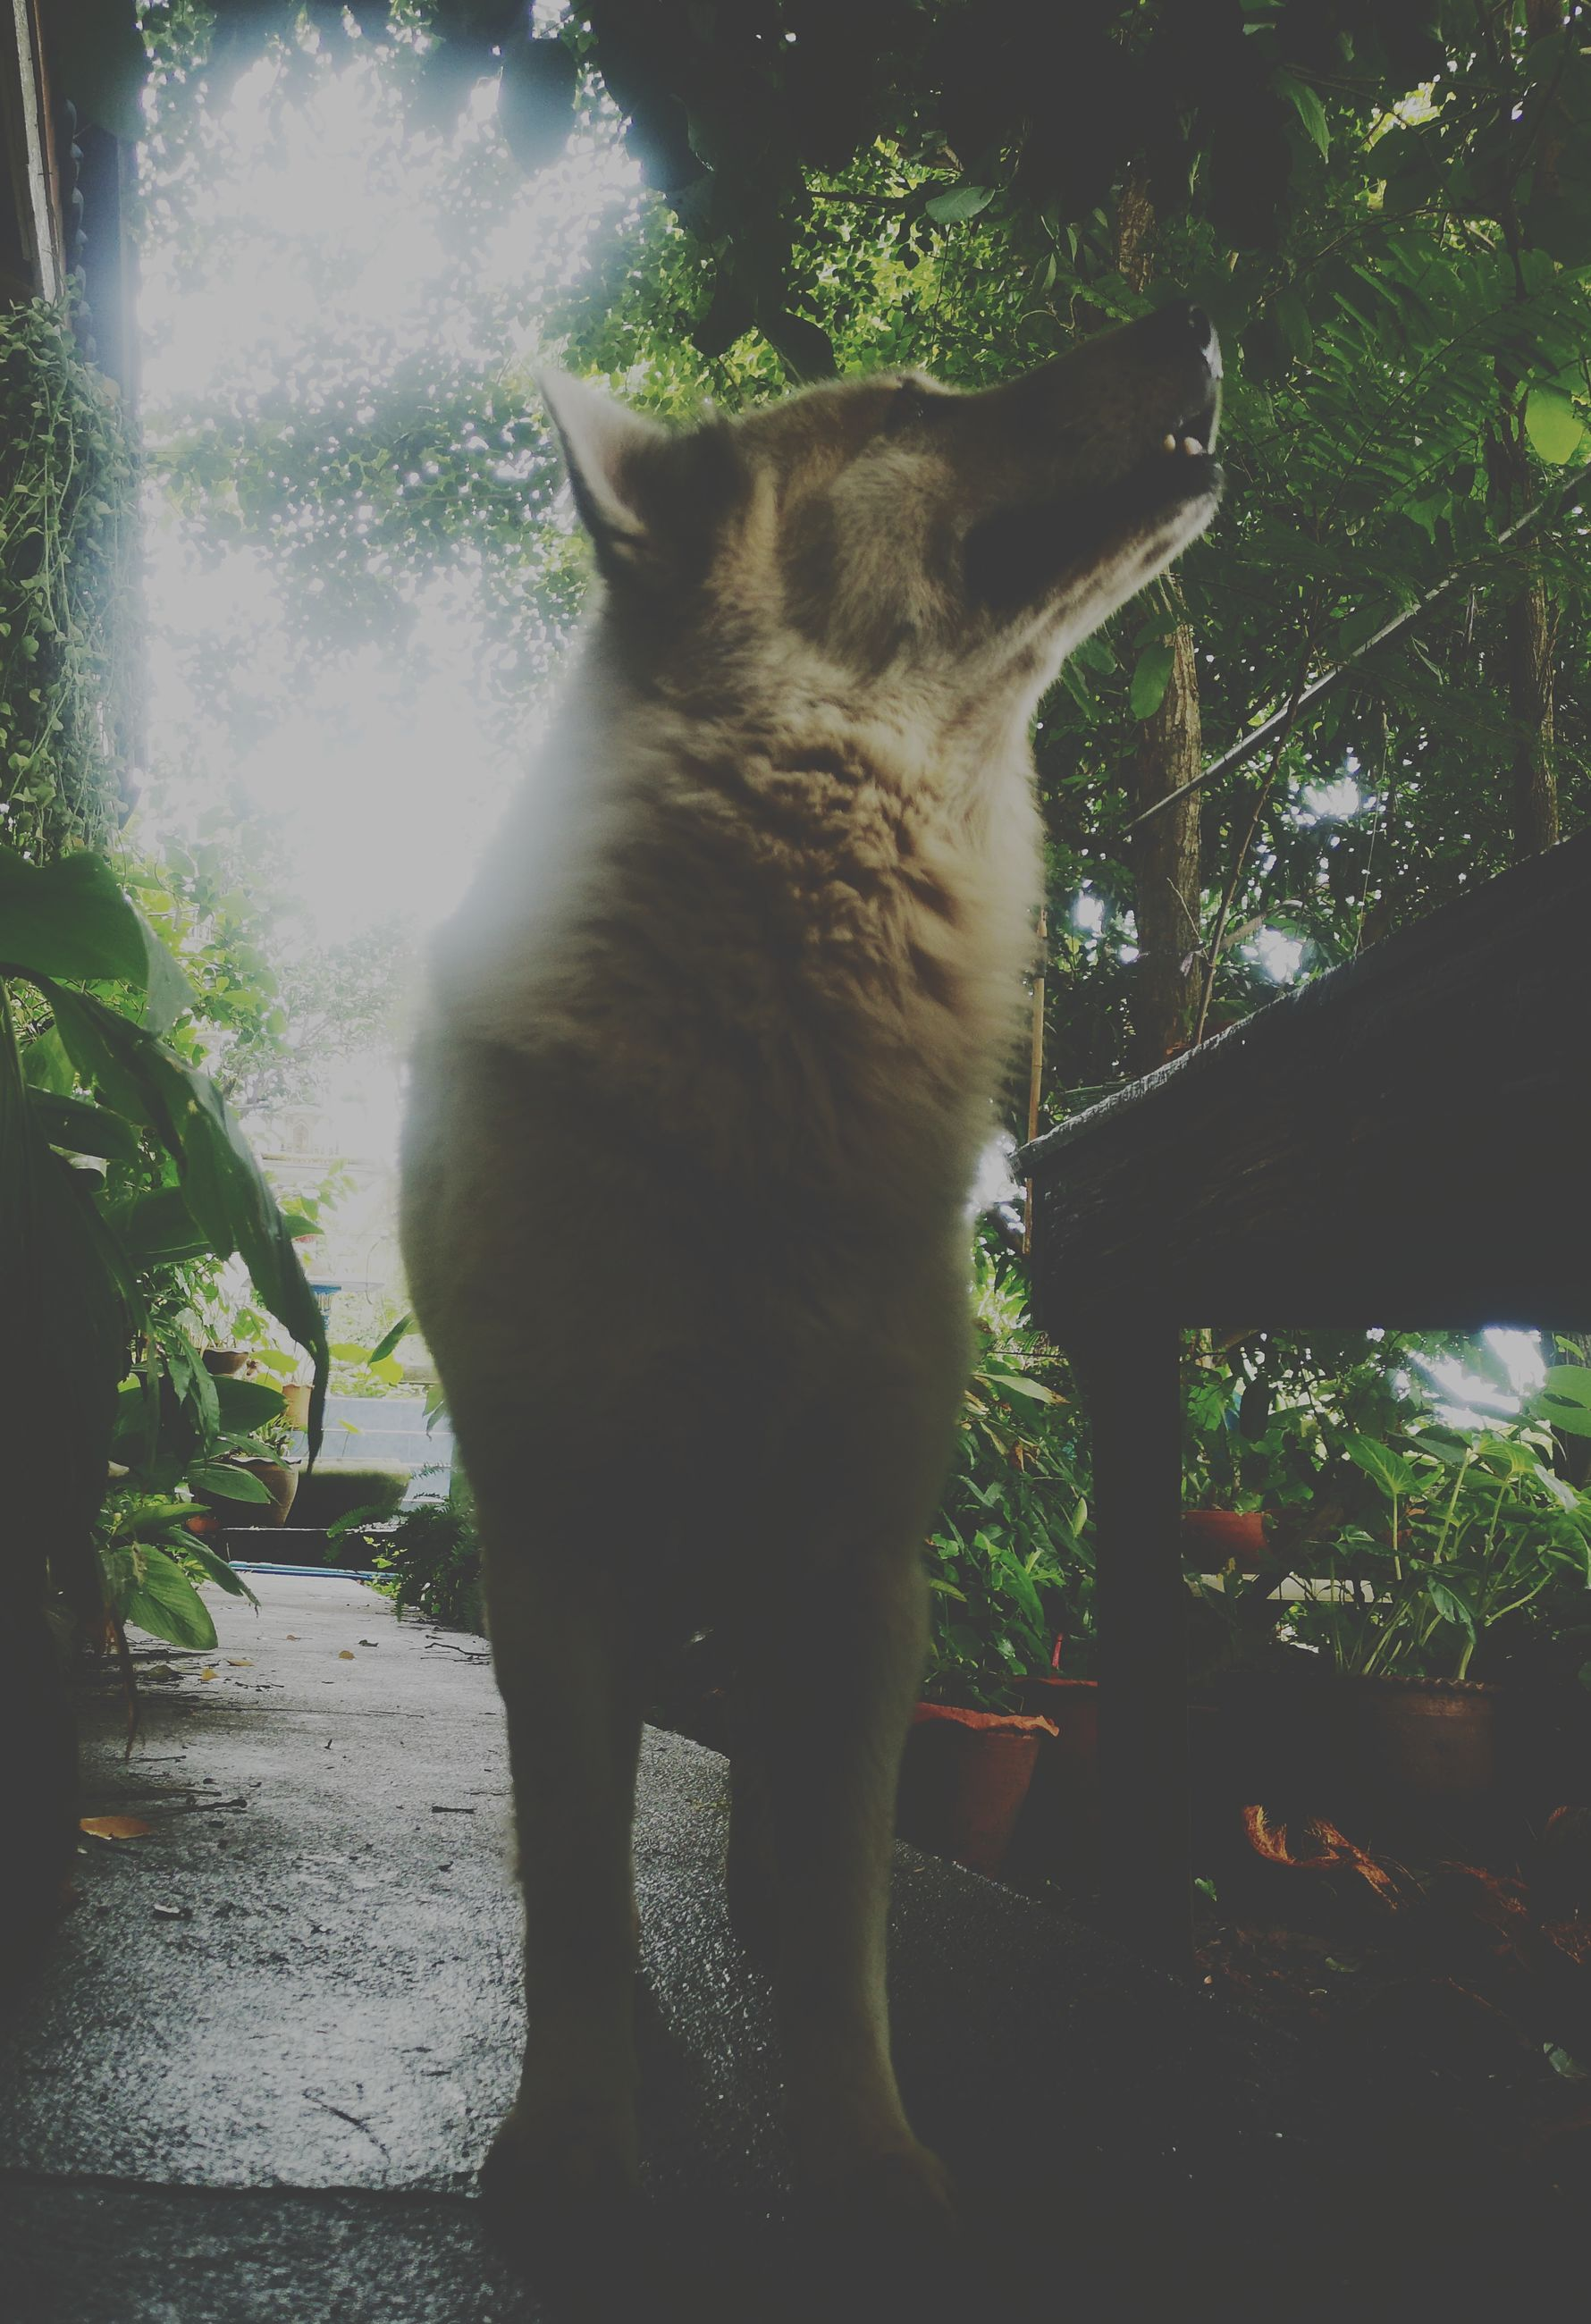 mammal, animal themes, domestic, animal, domestic animals, pets, one animal, cat, domestic cat, plant, vertebrate, feline, no people, nature, standing, looking, day, tree, front or back yard, outdoors, whisker